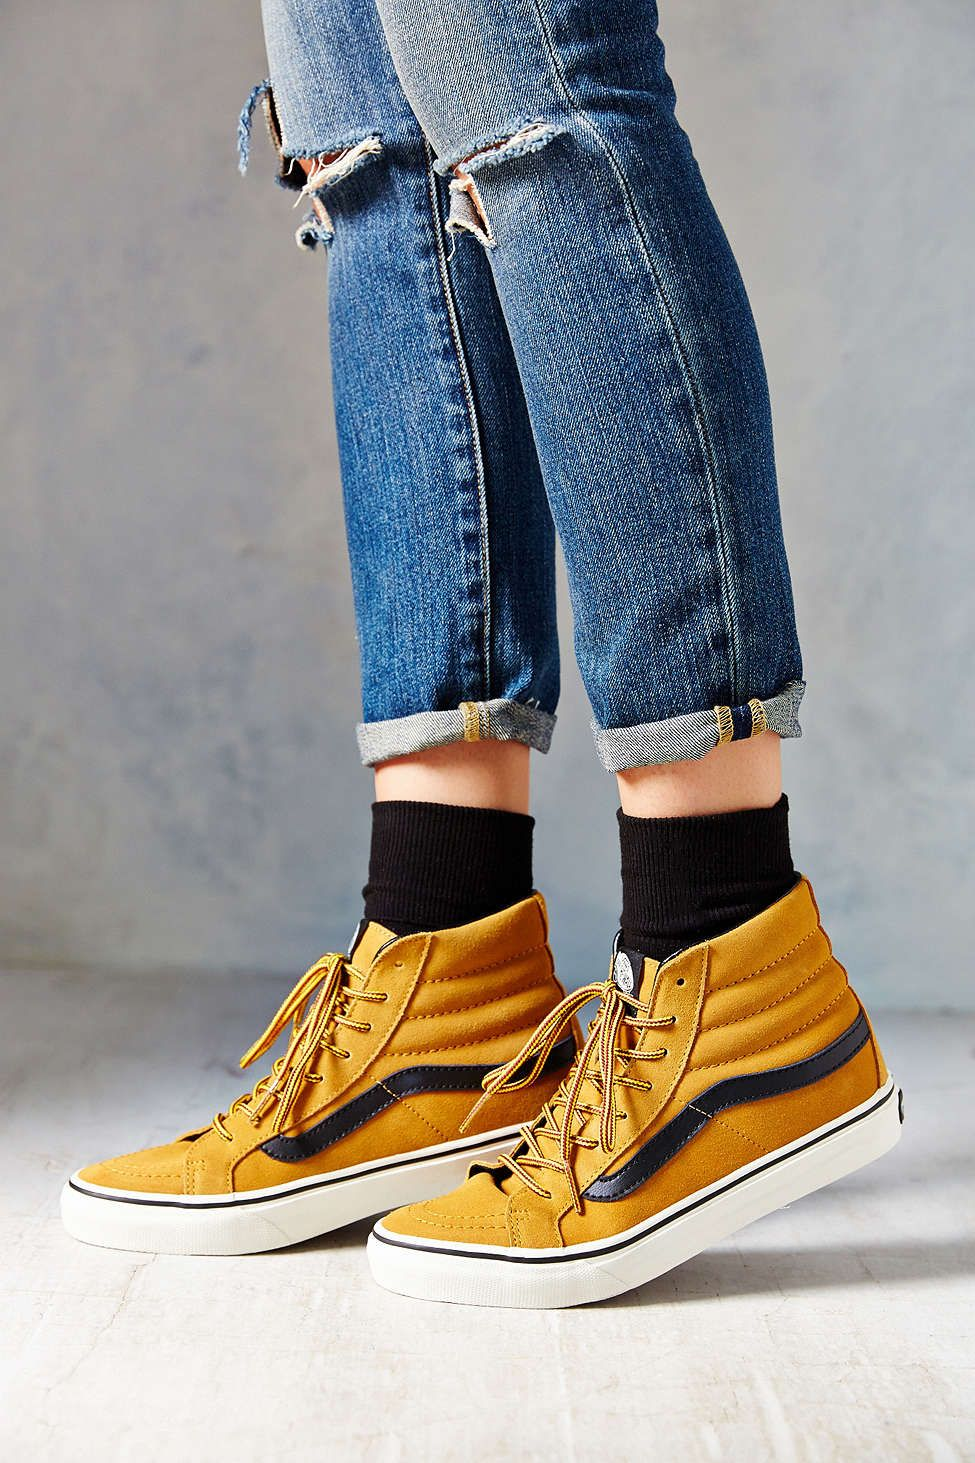 6719c7ddc19e51 Vans Sk8-Hi Slim Hiker Women s High-Top Sneaker